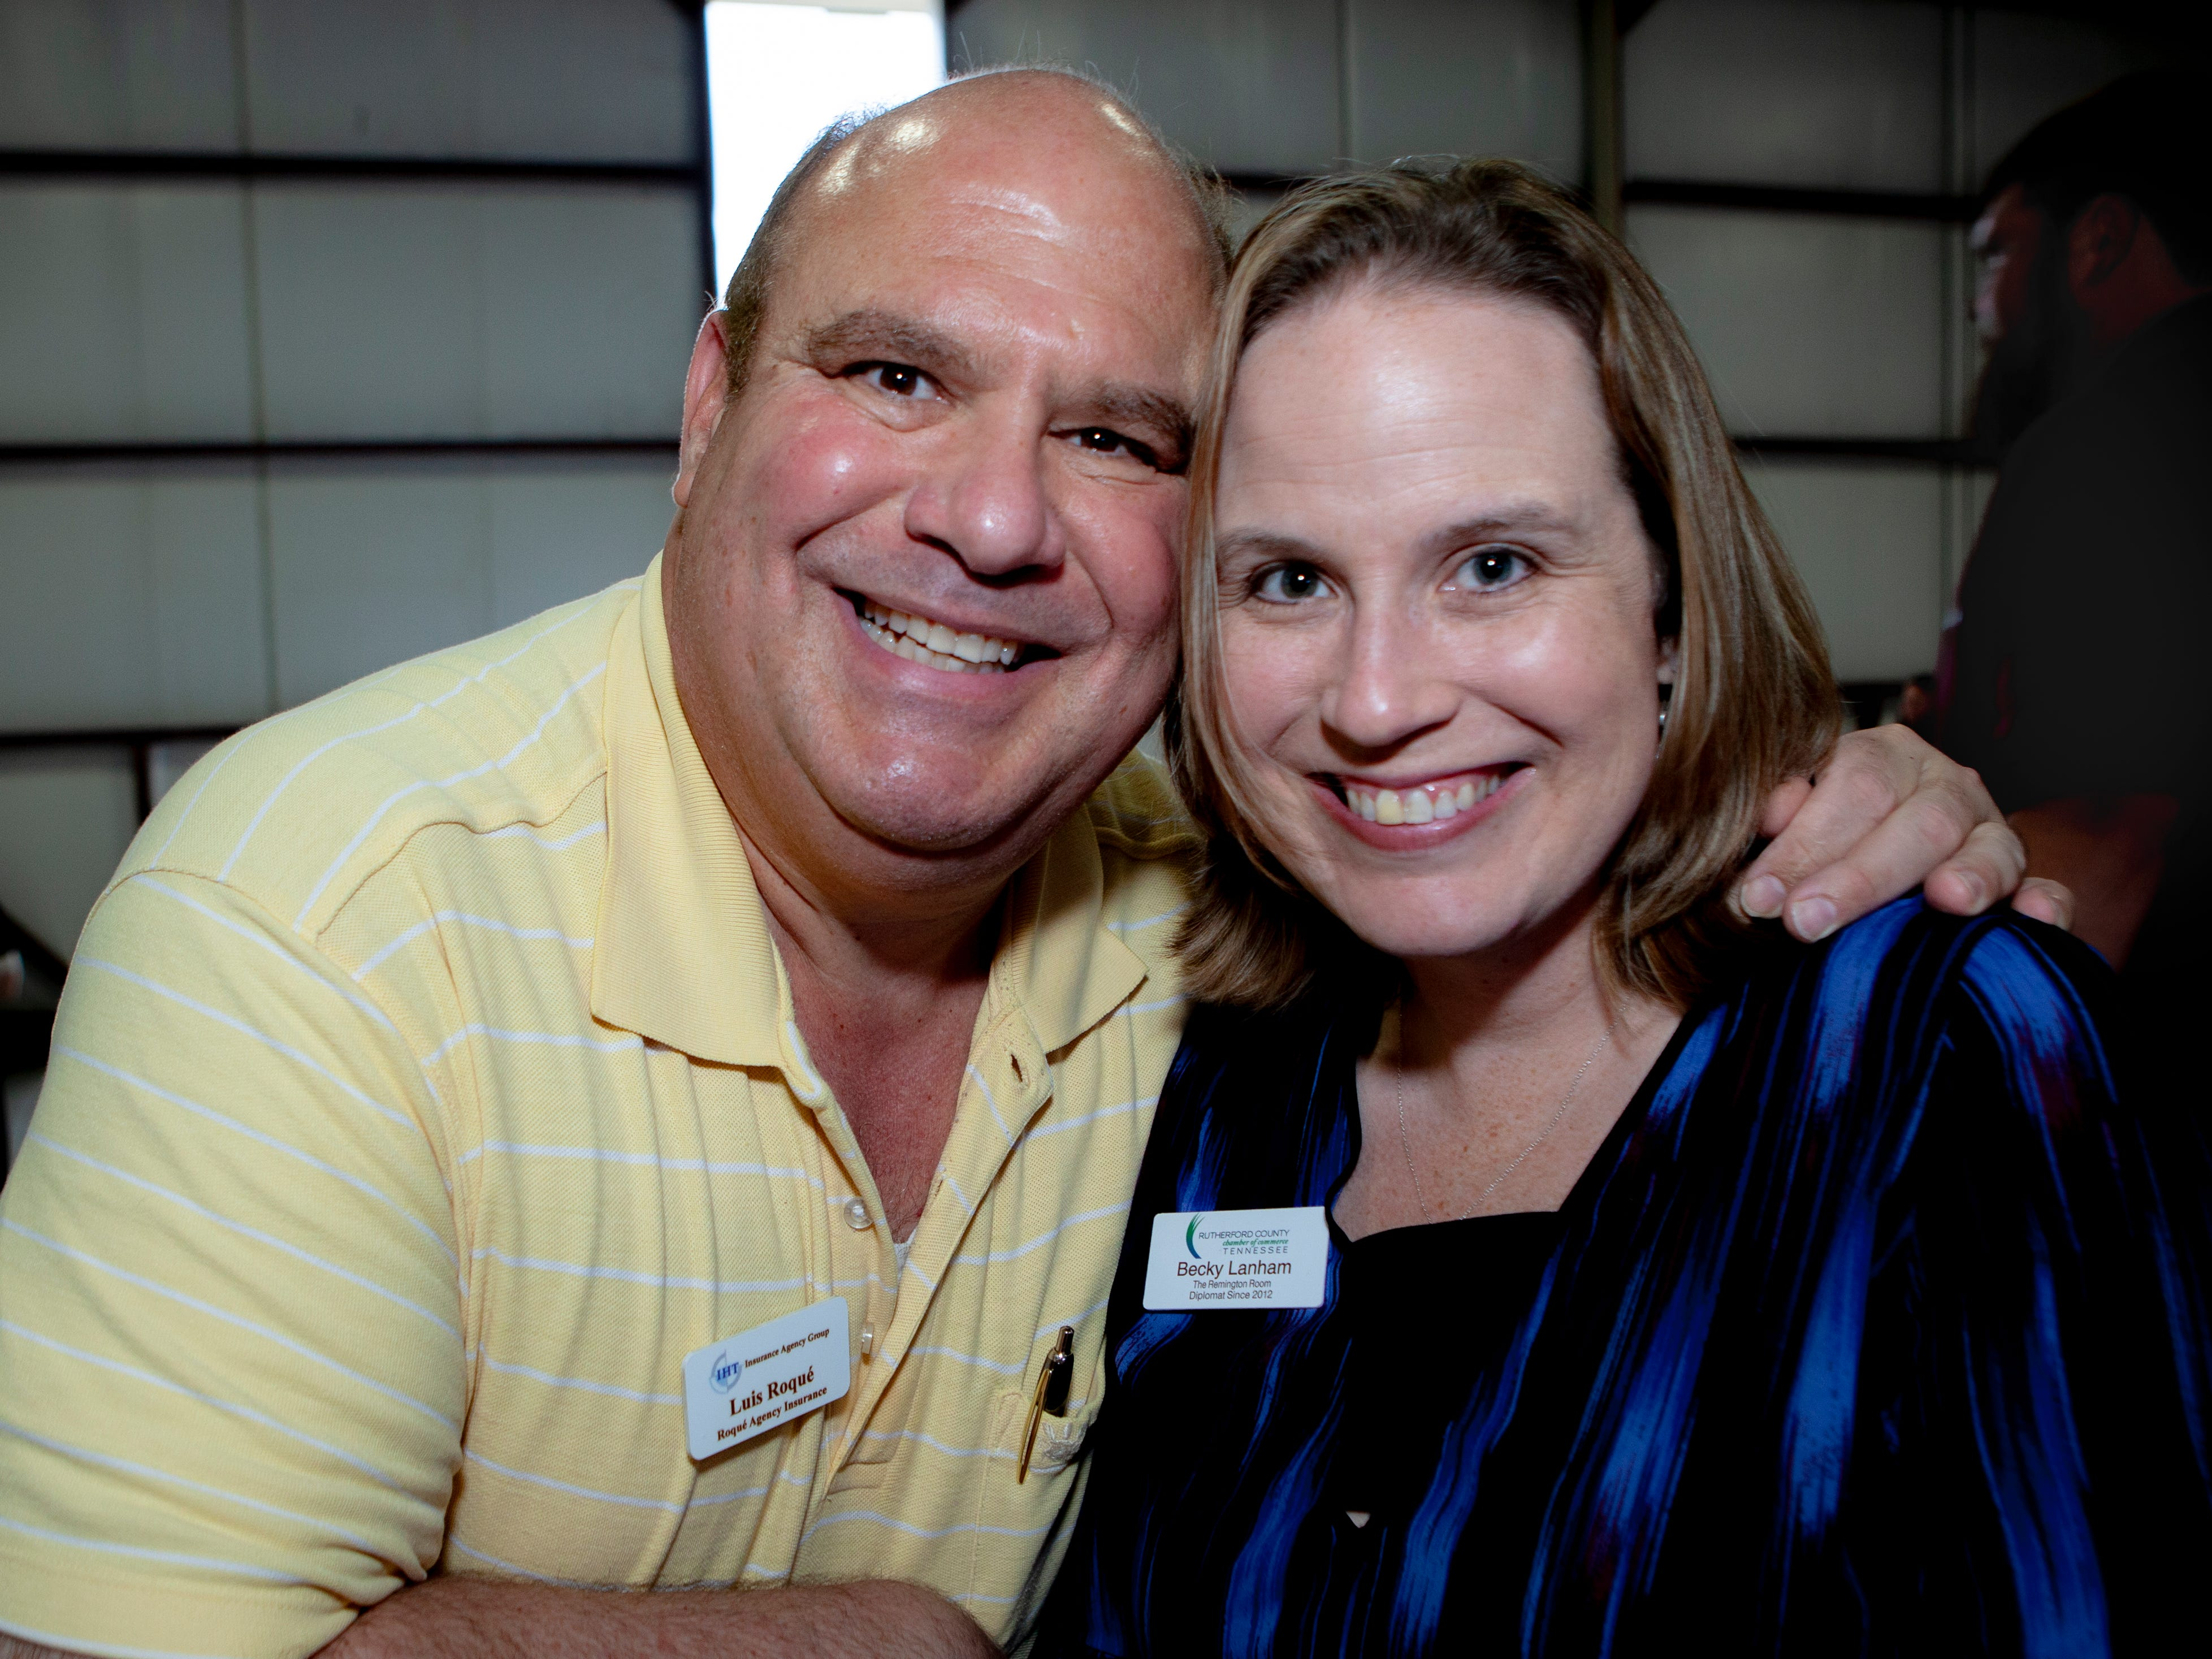 Louis Roque and Becky Lanham at the Light Up Local Firefly Awards, hosted by Locally Owned Murfreesboro and Smyrna Independent Merchants Association. Awards were presented Tuesday, April 23, 2019 at Hollingshead Aviation at Smyrna Airport.